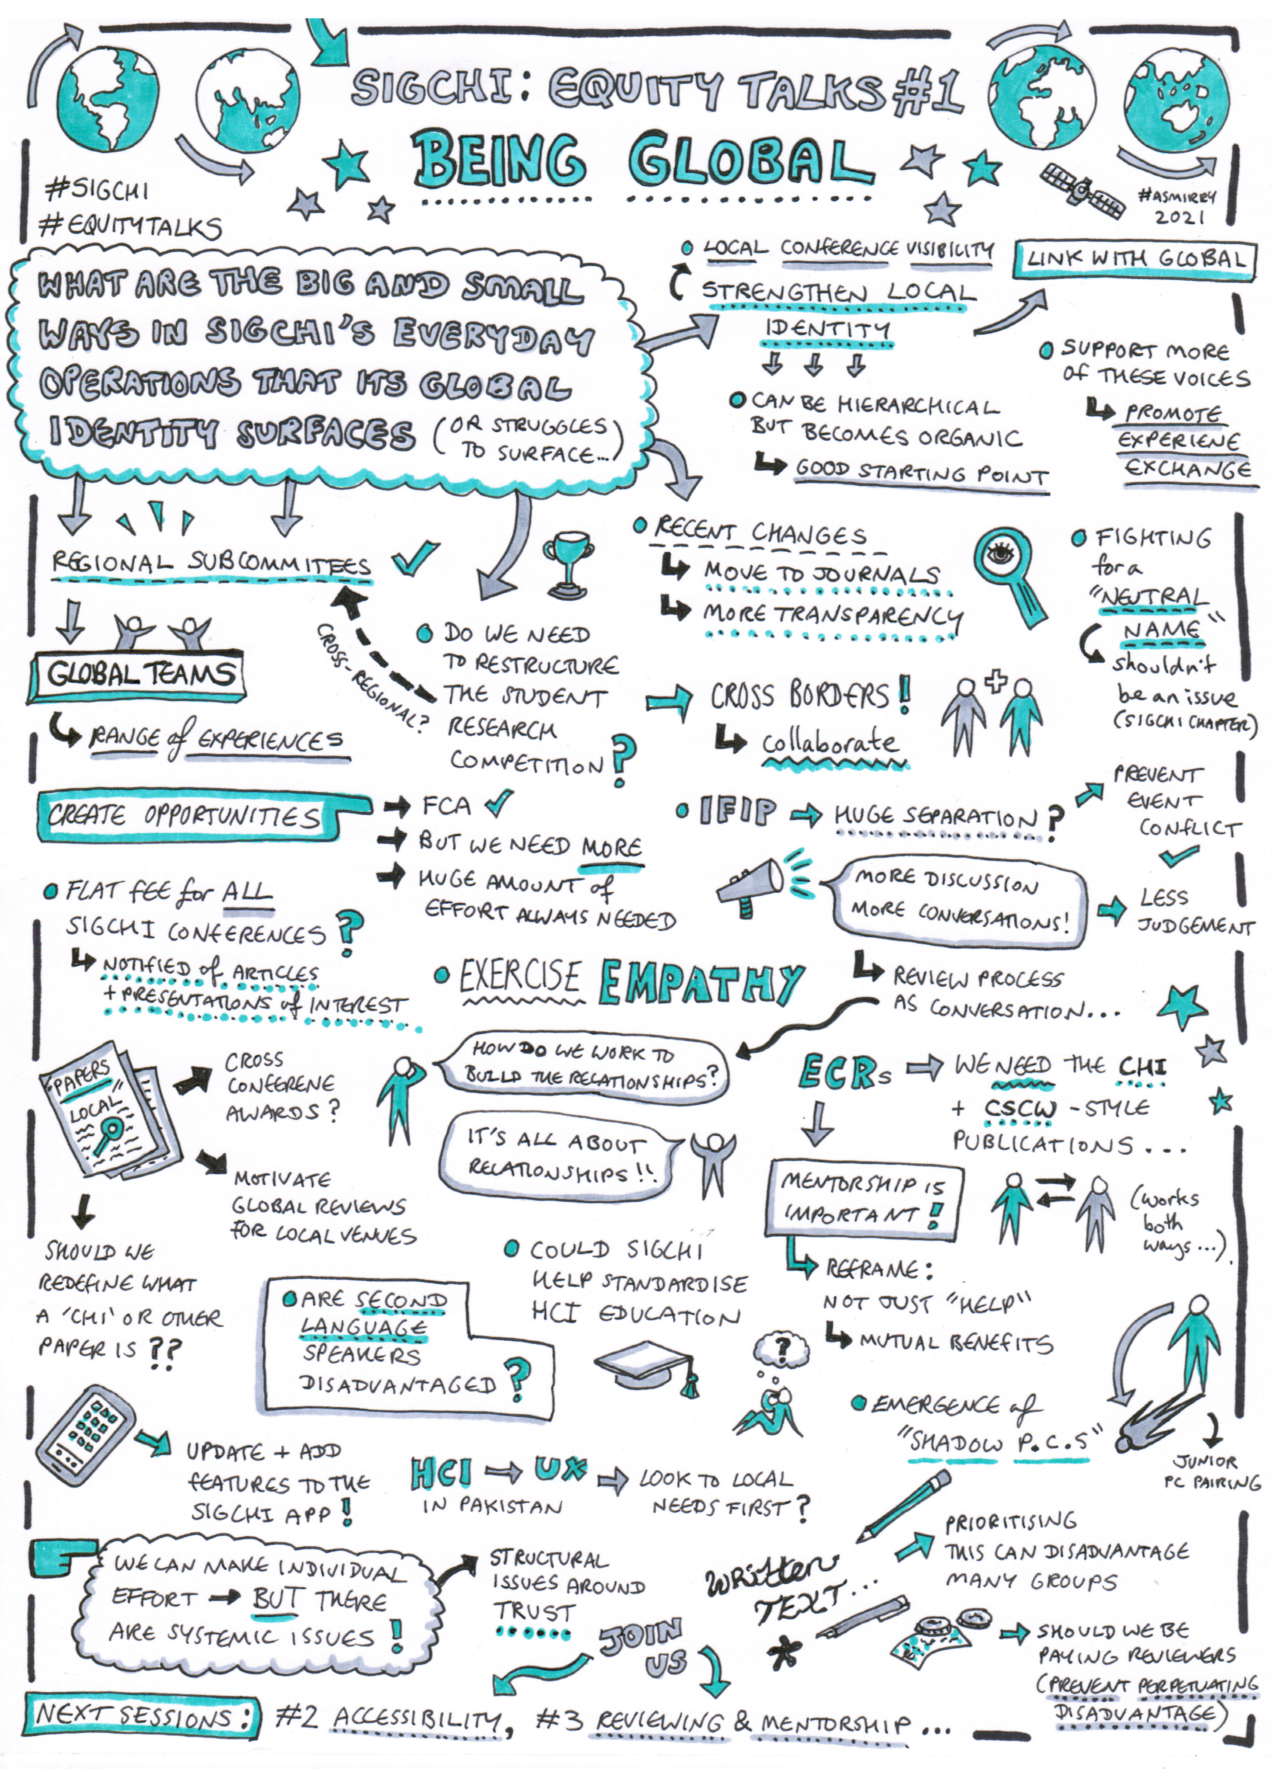 An image of sketch notes from the session, essentially capturing the summary in the text of the post.